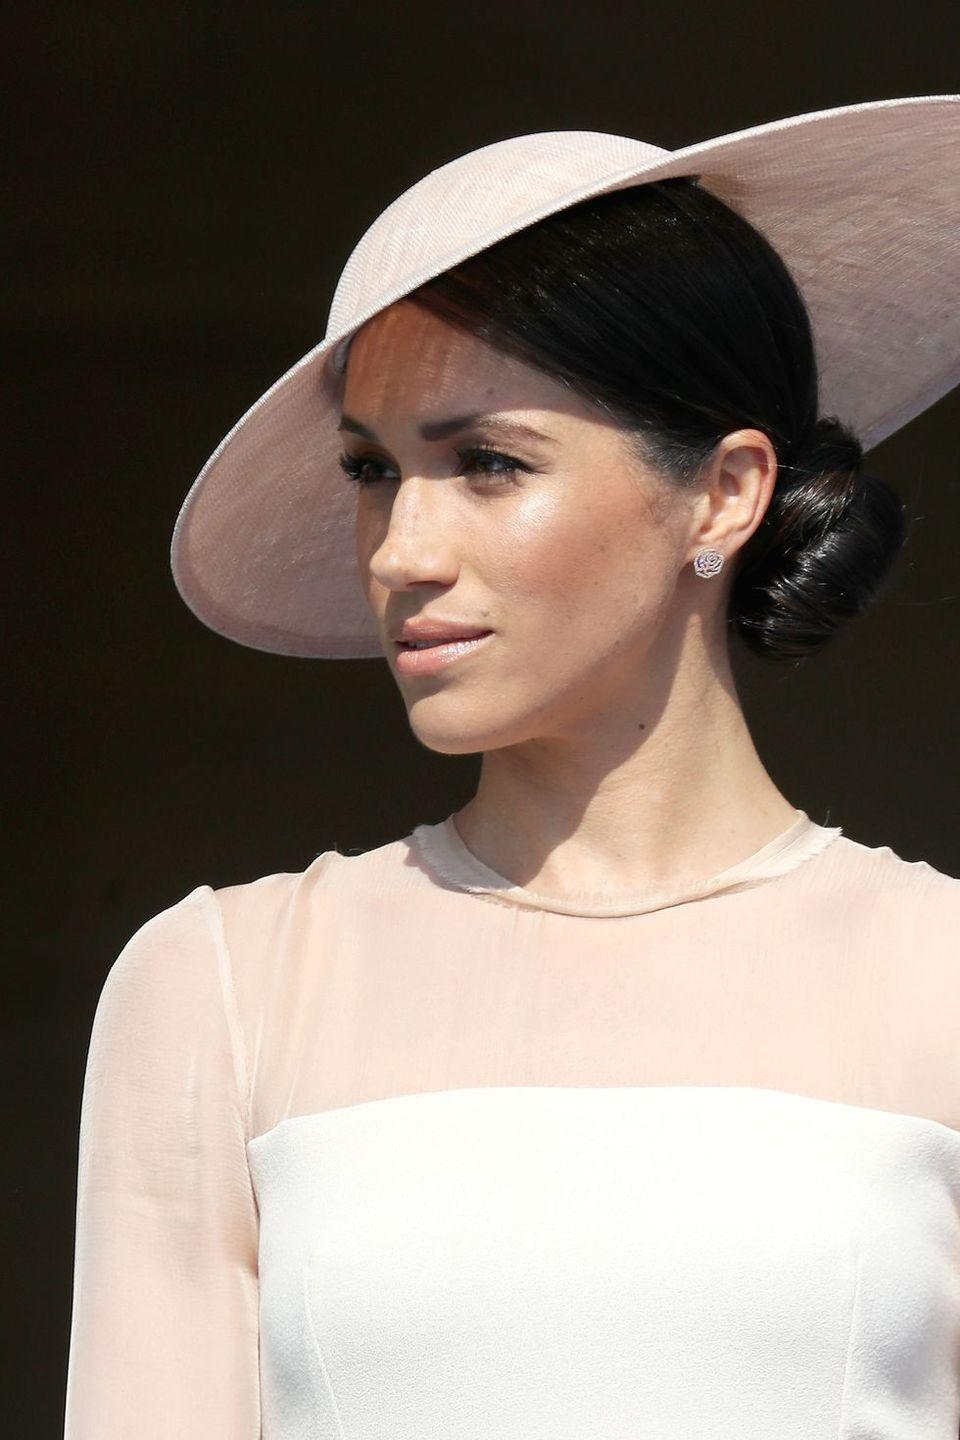 """<p>The <a href=""""https://www.goodhousekeeping.com/life/a19662278/meghan-markle-title/"""" rel=""""nofollow noopener"""" target=""""_blank"""" data-ylk=""""slk:Duchess of Sussex"""" class=""""link rapid-noclick-resp"""">Duchess of Sussex</a> likes to rep <a href=""""https://www.goodhousekeeping.com/beauty/news/a47608/meghan-markle-messy-bun/"""" rel=""""nofollow noopener"""" target=""""_blank"""" data-ylk=""""slk:loose buns"""" class=""""link rapid-noclick-resp"""">loose buns</a>, but her tighter chignons look super sleek thanks to this quick tip. """"For my flyaways, I spray hairspray on a small boar bristle toothbrush (a regular toothbrush also works great!) to lightly brush them down or smooth the hairline,"""" she told <a href=""""https://www.birchbox.com/magazine/article/meghan-markle-suits-beauty-secrets?"""" rel=""""nofollow noopener"""" target=""""_blank"""" data-ylk=""""slk:Birchbox"""" class=""""link rapid-noclick-resp"""">Birchbox</a>. """"This is especially good for a sleek bun when I am off-camera.""""</p>"""